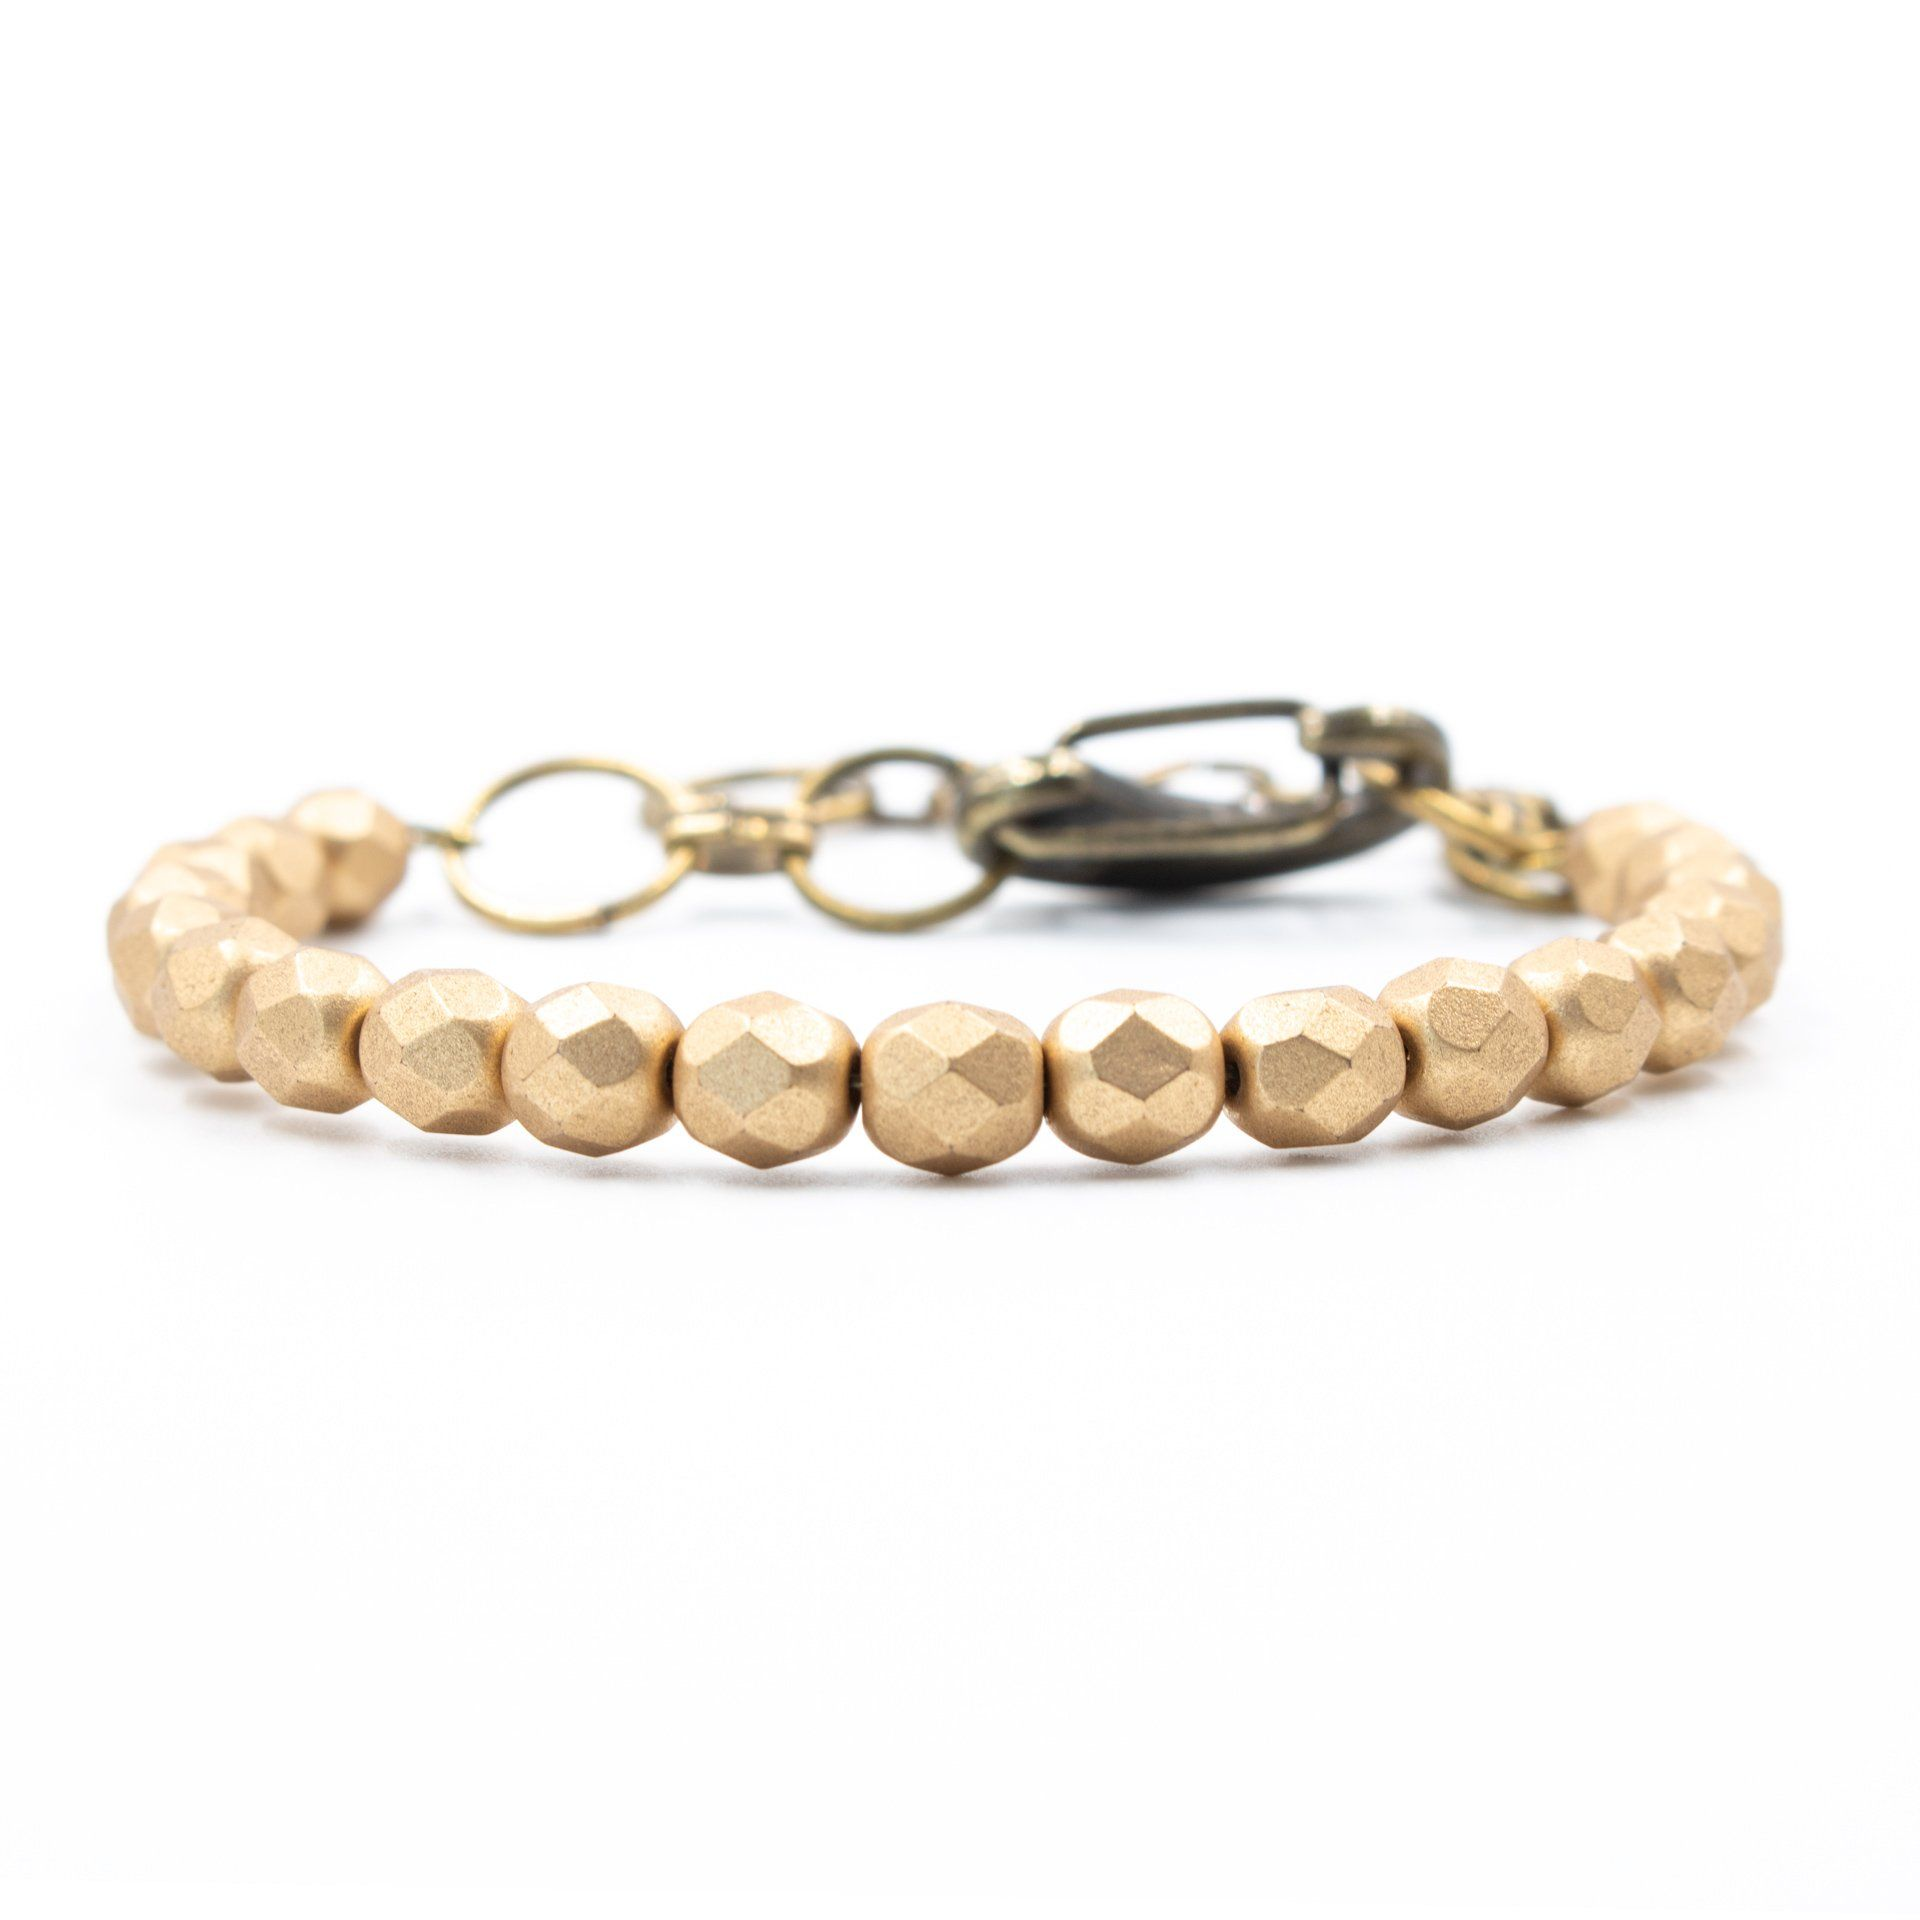 Handmade Gold Beaded Bracelet